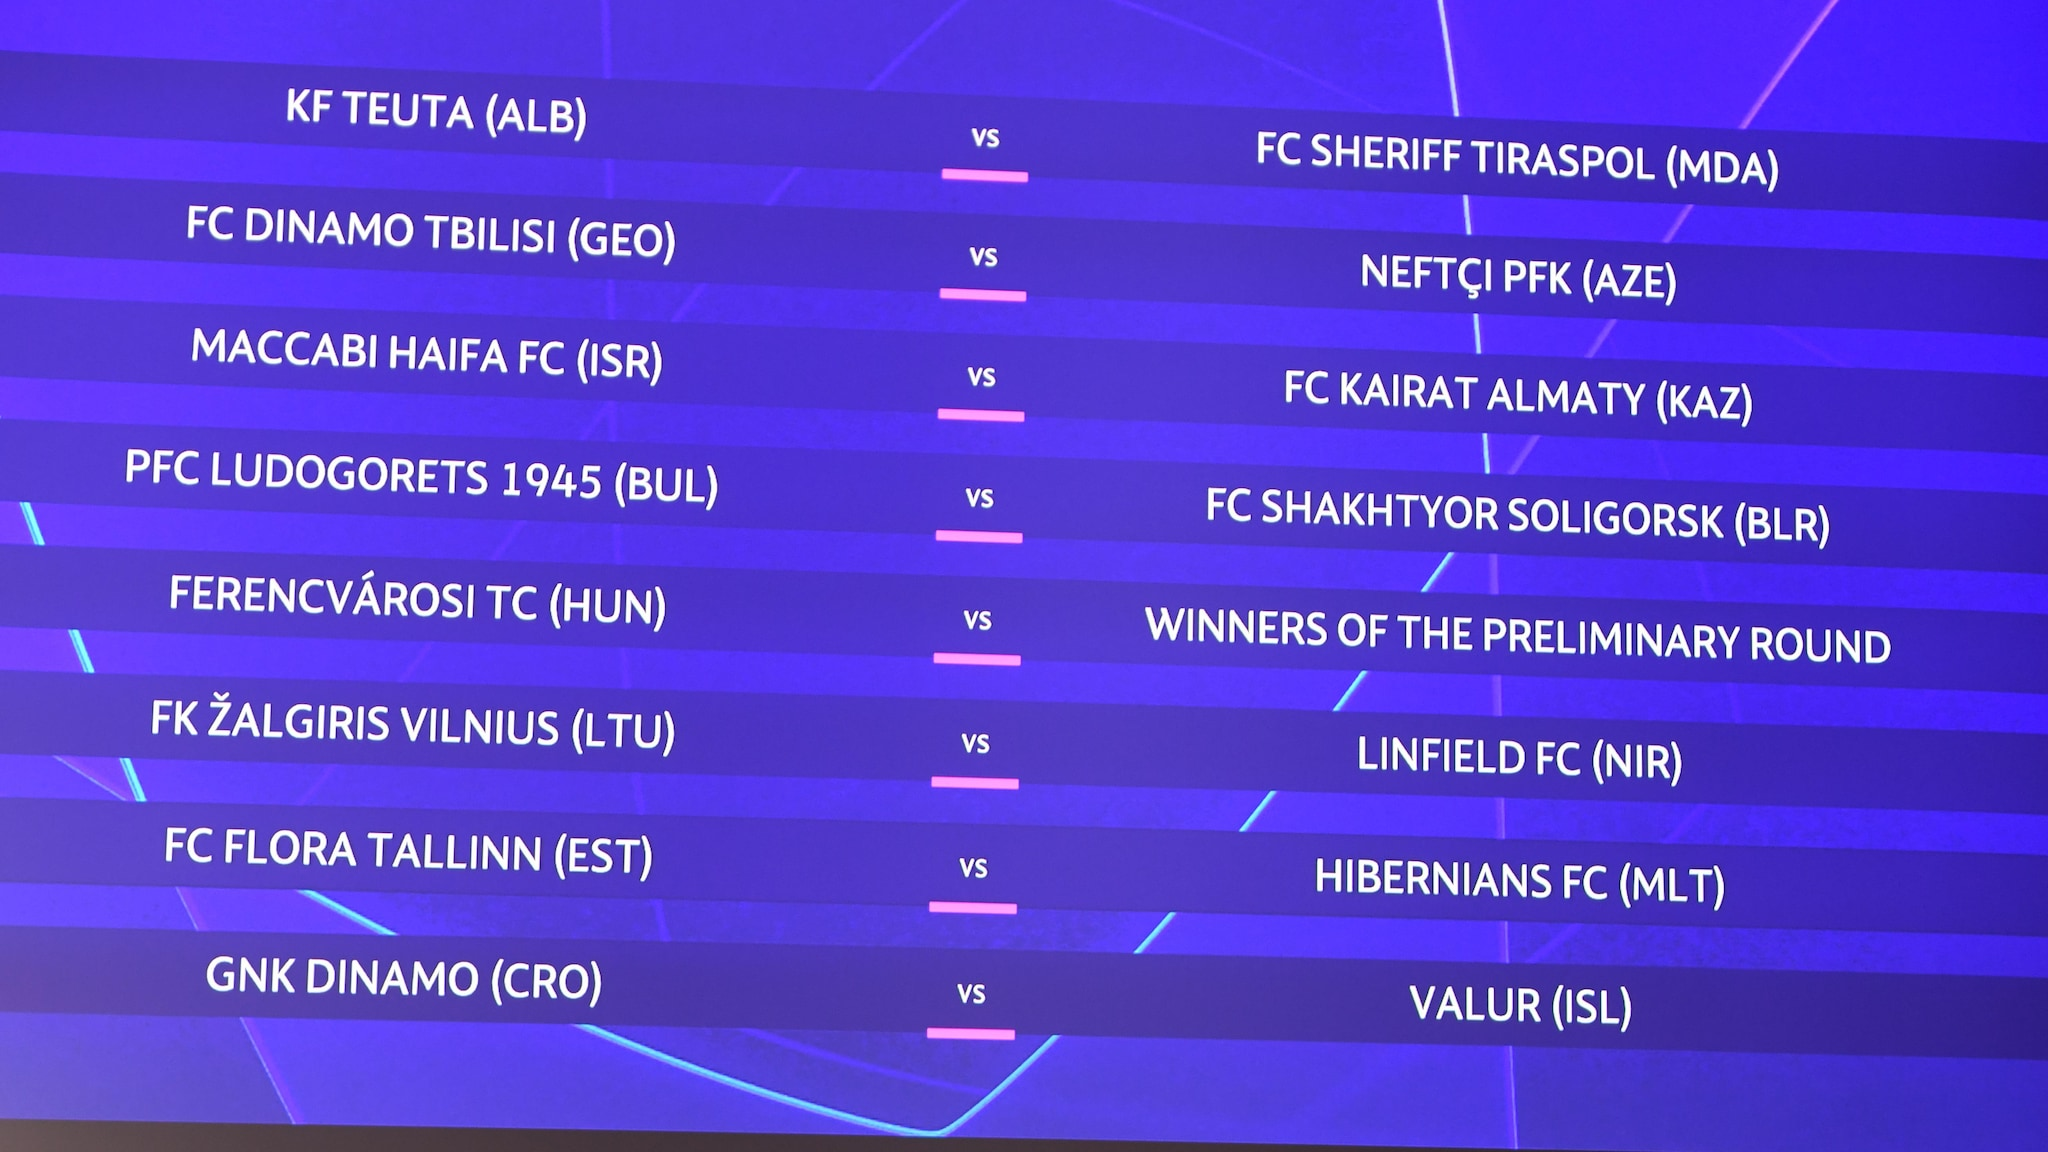 UEFA Champions League first qualifying round draw